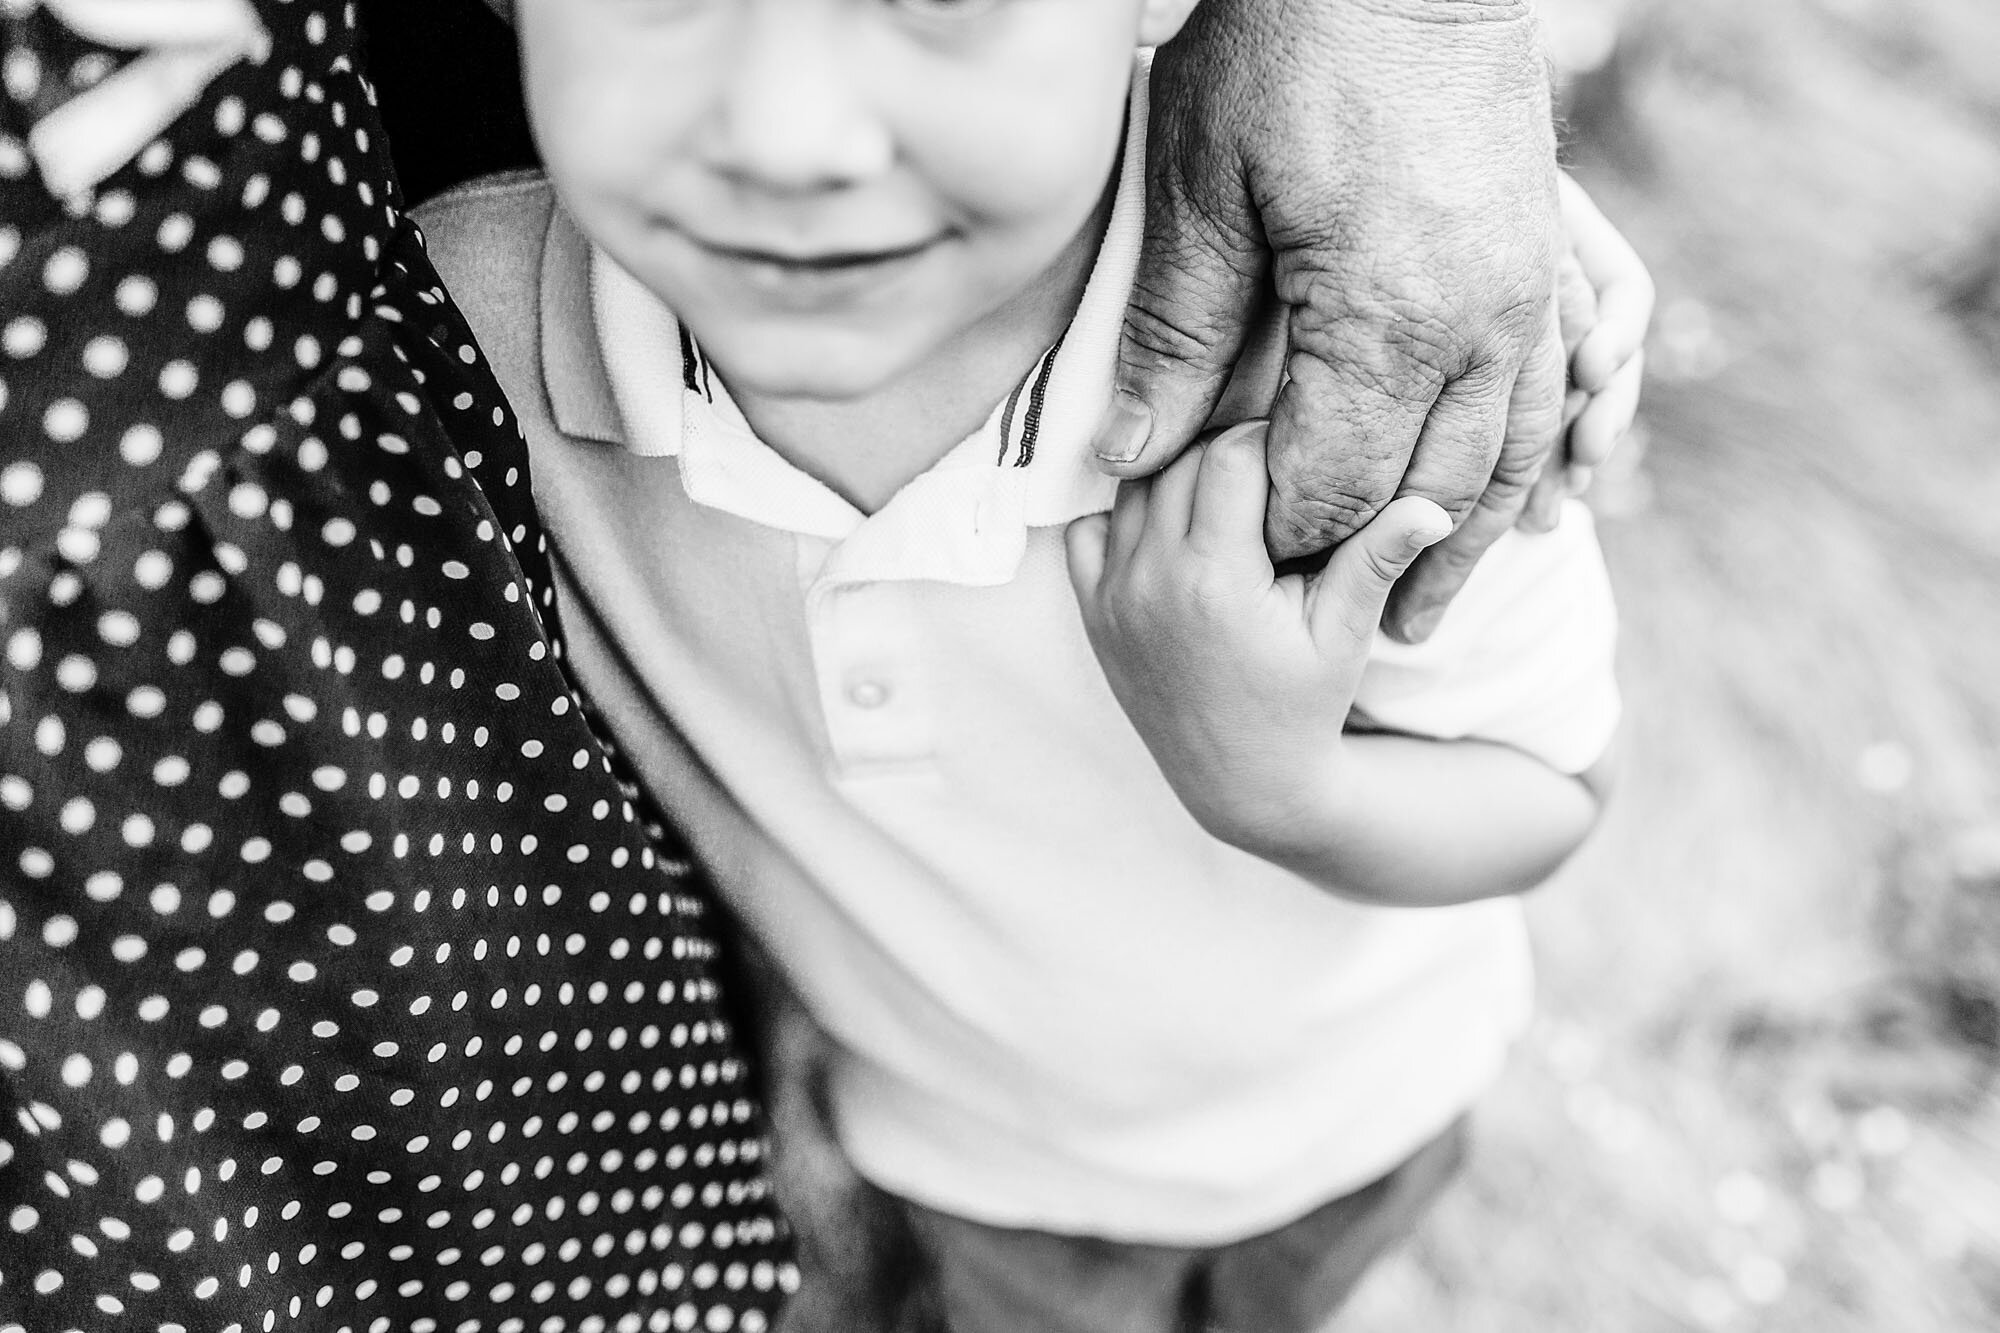 A grandson holds his grandfather's hand during a sweet extended family photo session with Roseville photographer Amy Wright.